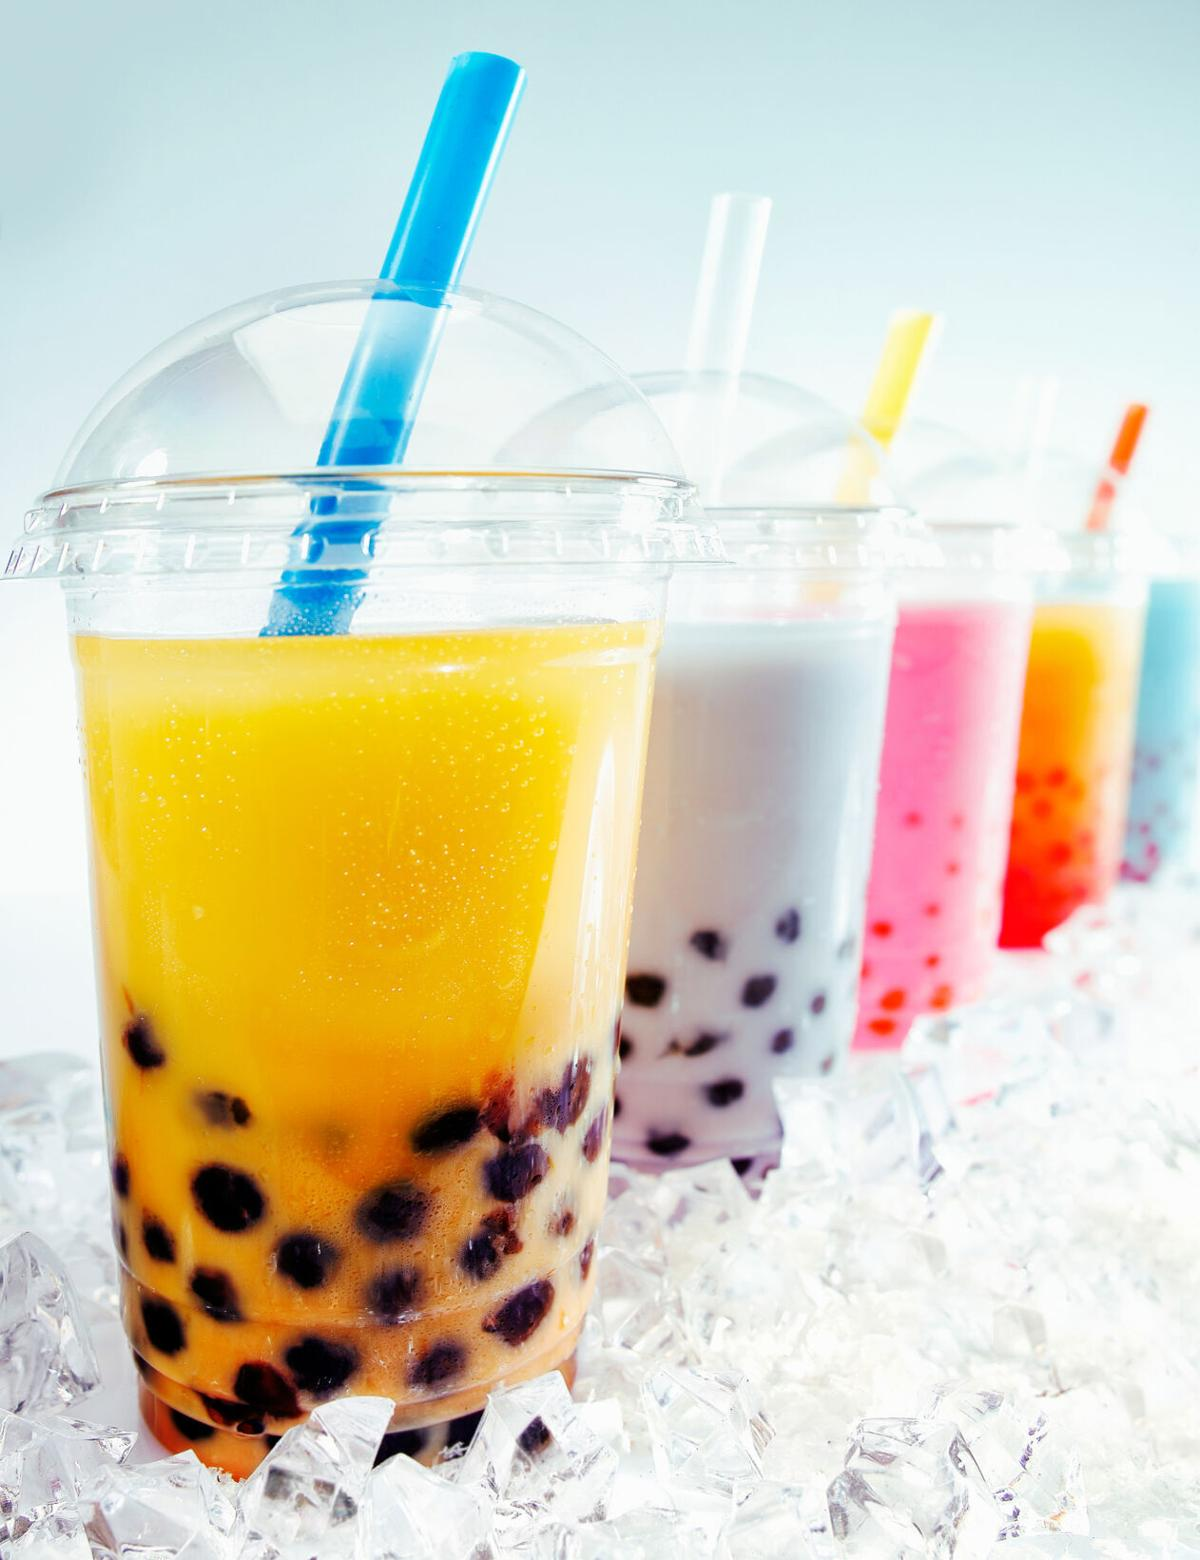 Boba, also known as bubble tea, originated in Taiwan in the 1980 s and arrived in the U.S. a decade later.